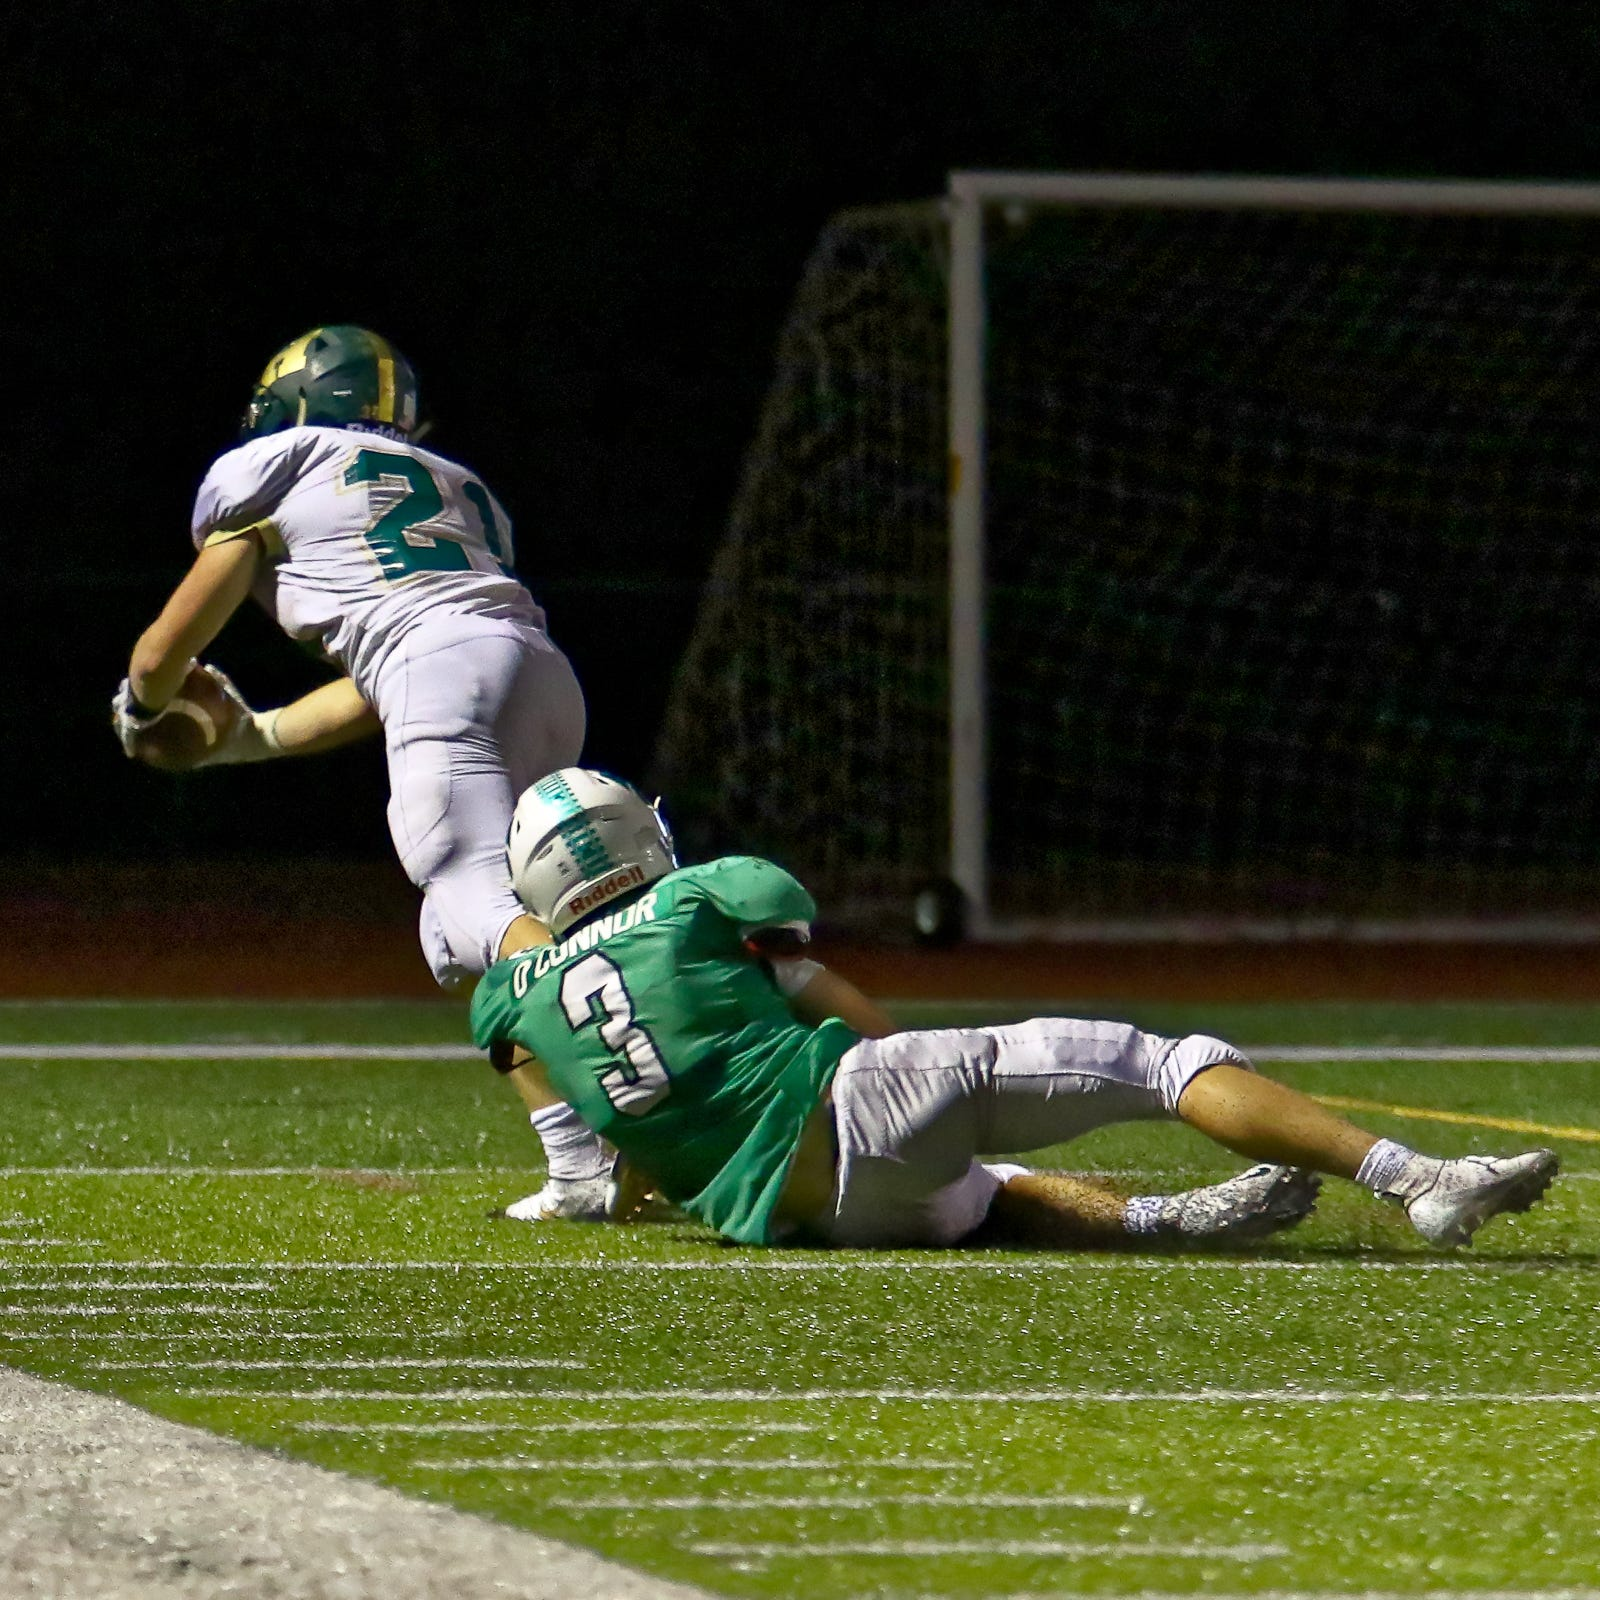 Howell fights back from 17-0 down to beat Novi